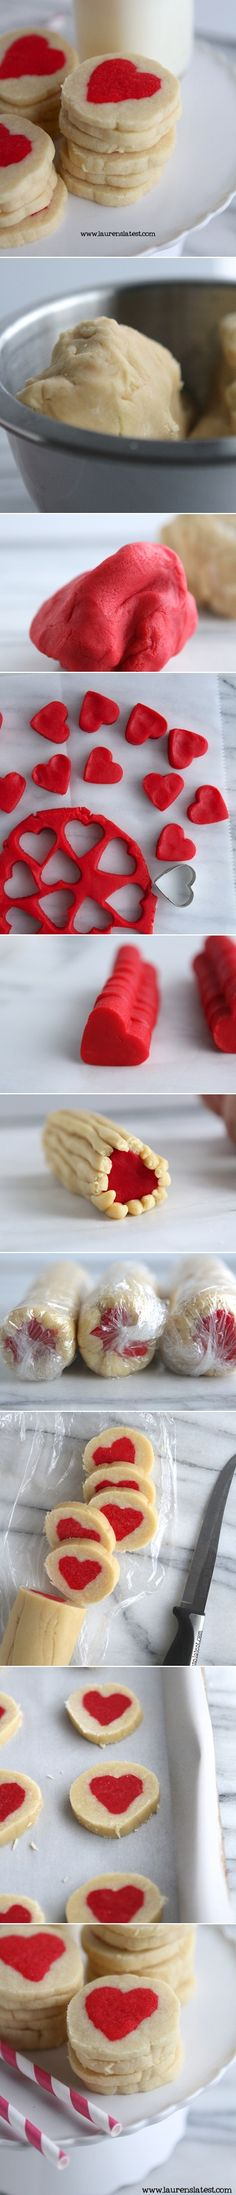 Slice n' Bake Valentine Heart Cookies - Awesome cookies to give as valentine's gifts. | Recipe by laurenslatest.com